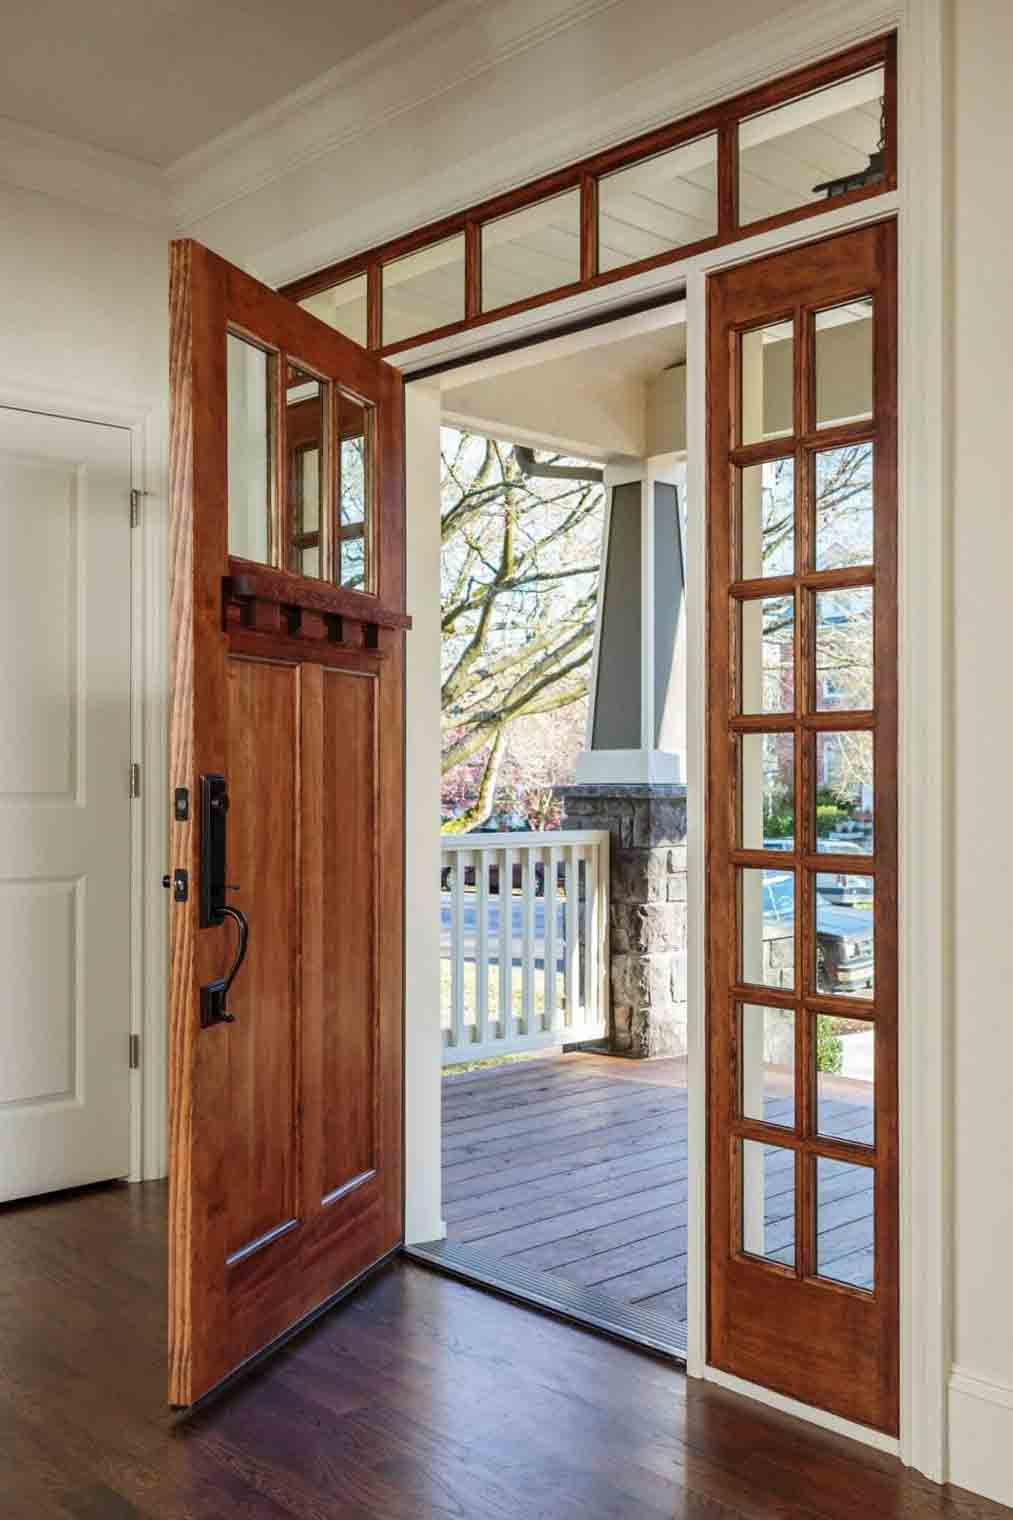 Sacramentos Doors And Windows Sales And Installation Services